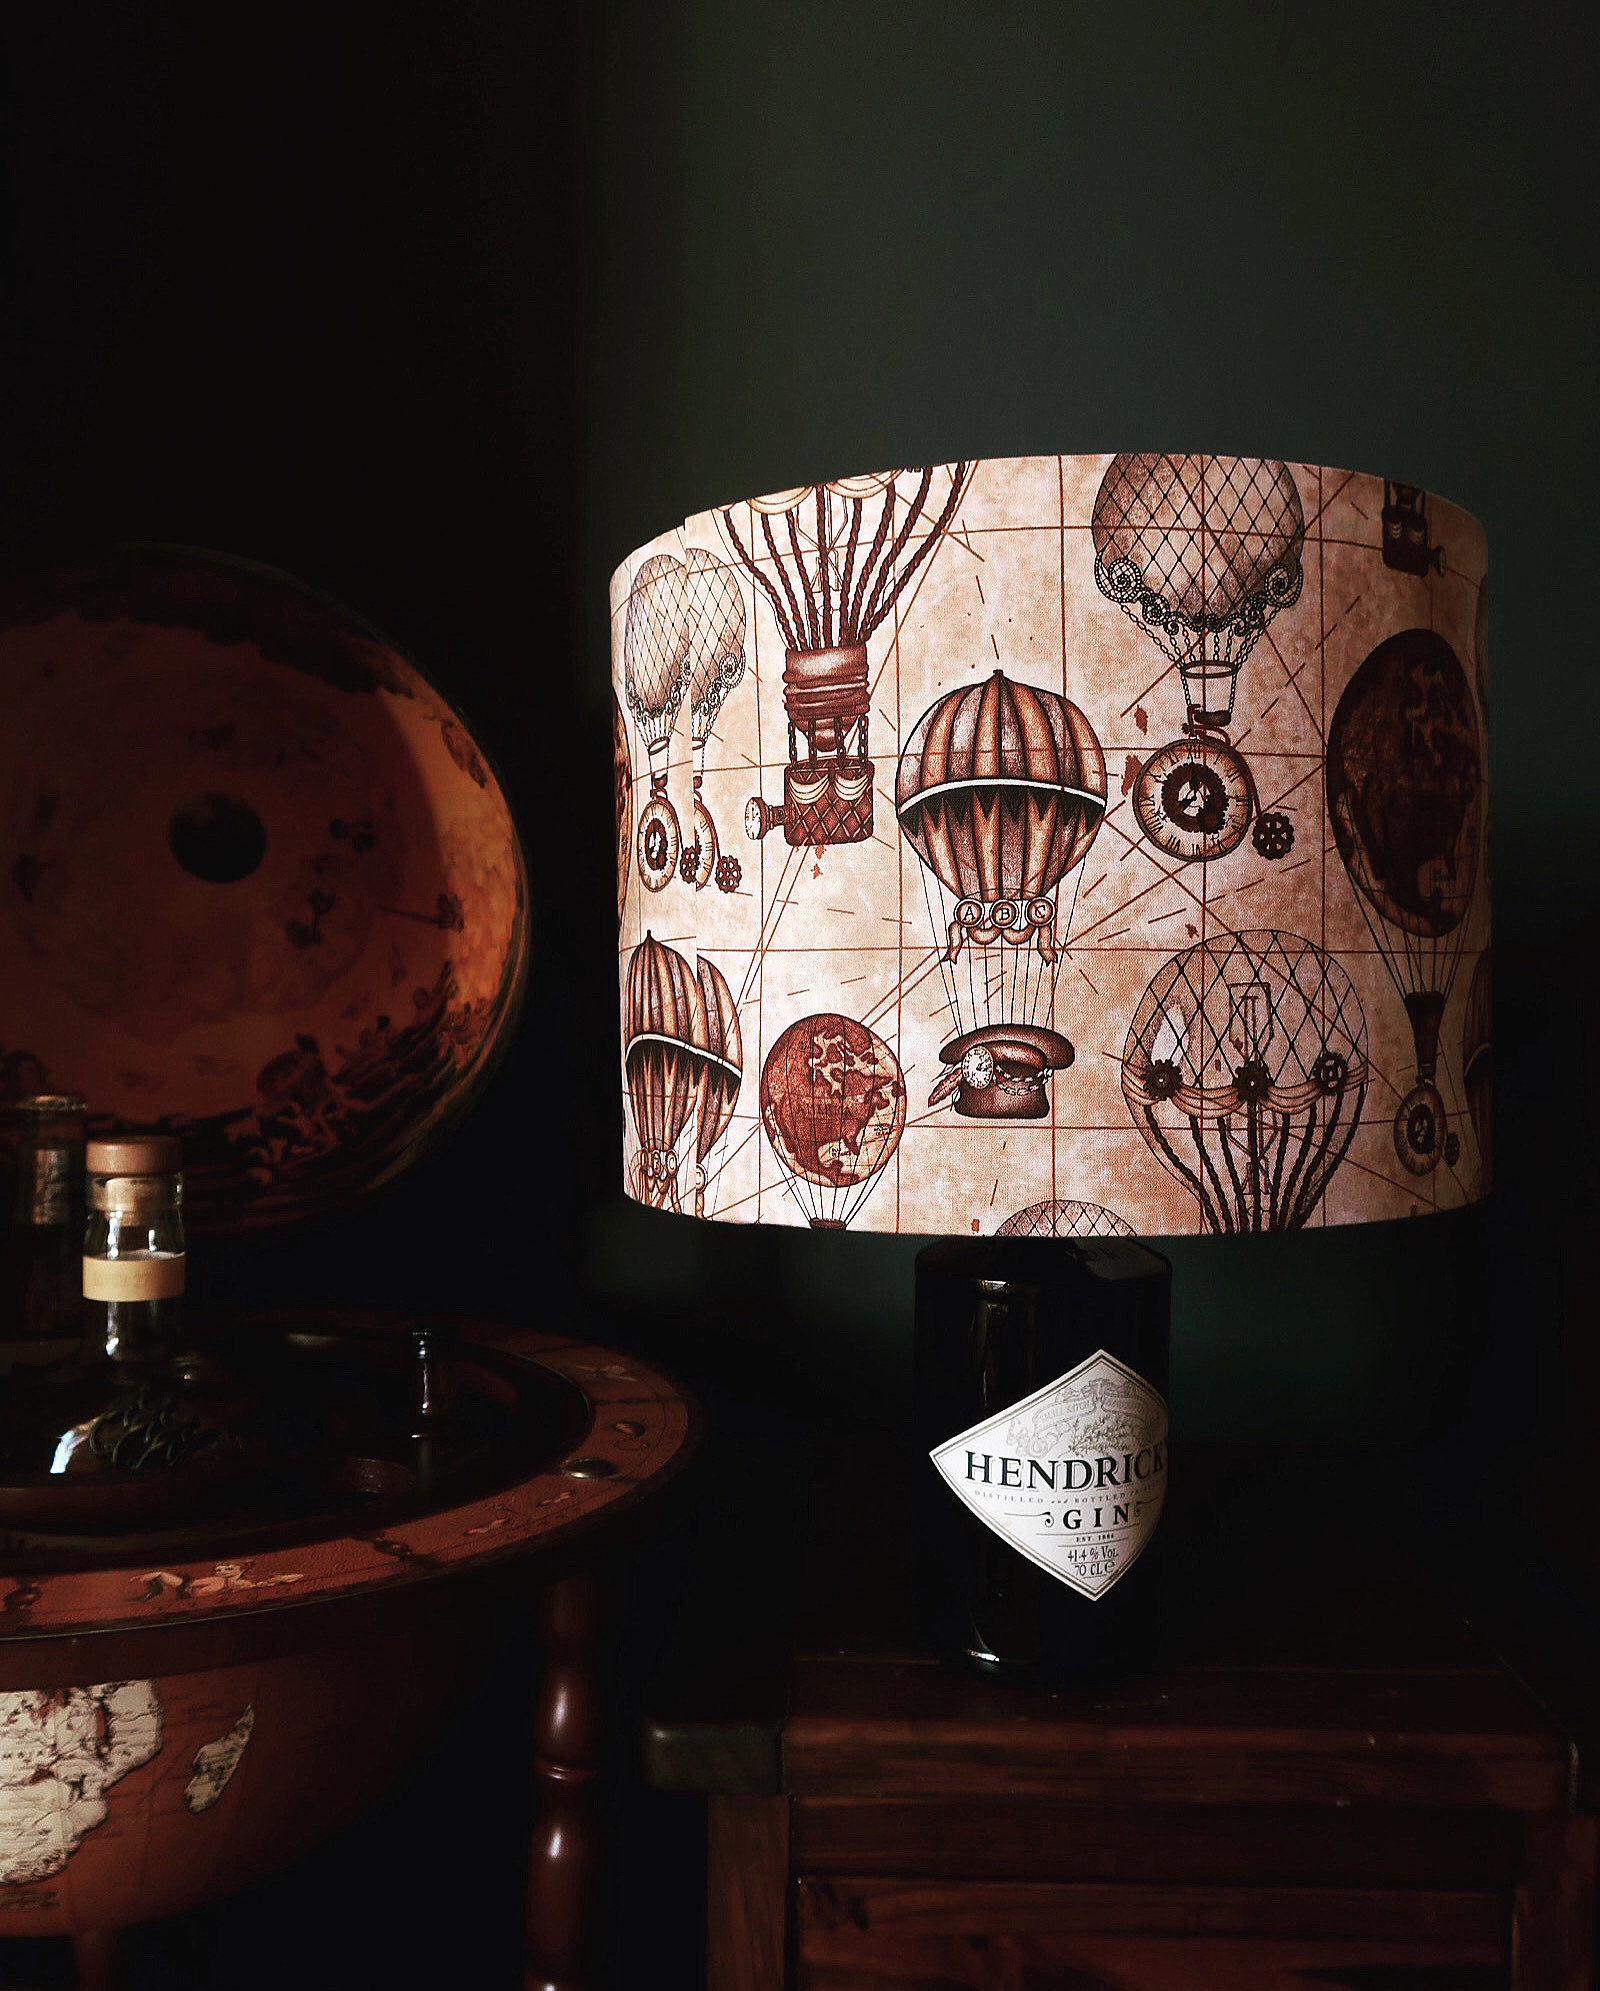 also available in 20cm 30cm wide Steampunk Hot air Balloon Lamp Shade 3 lining options.